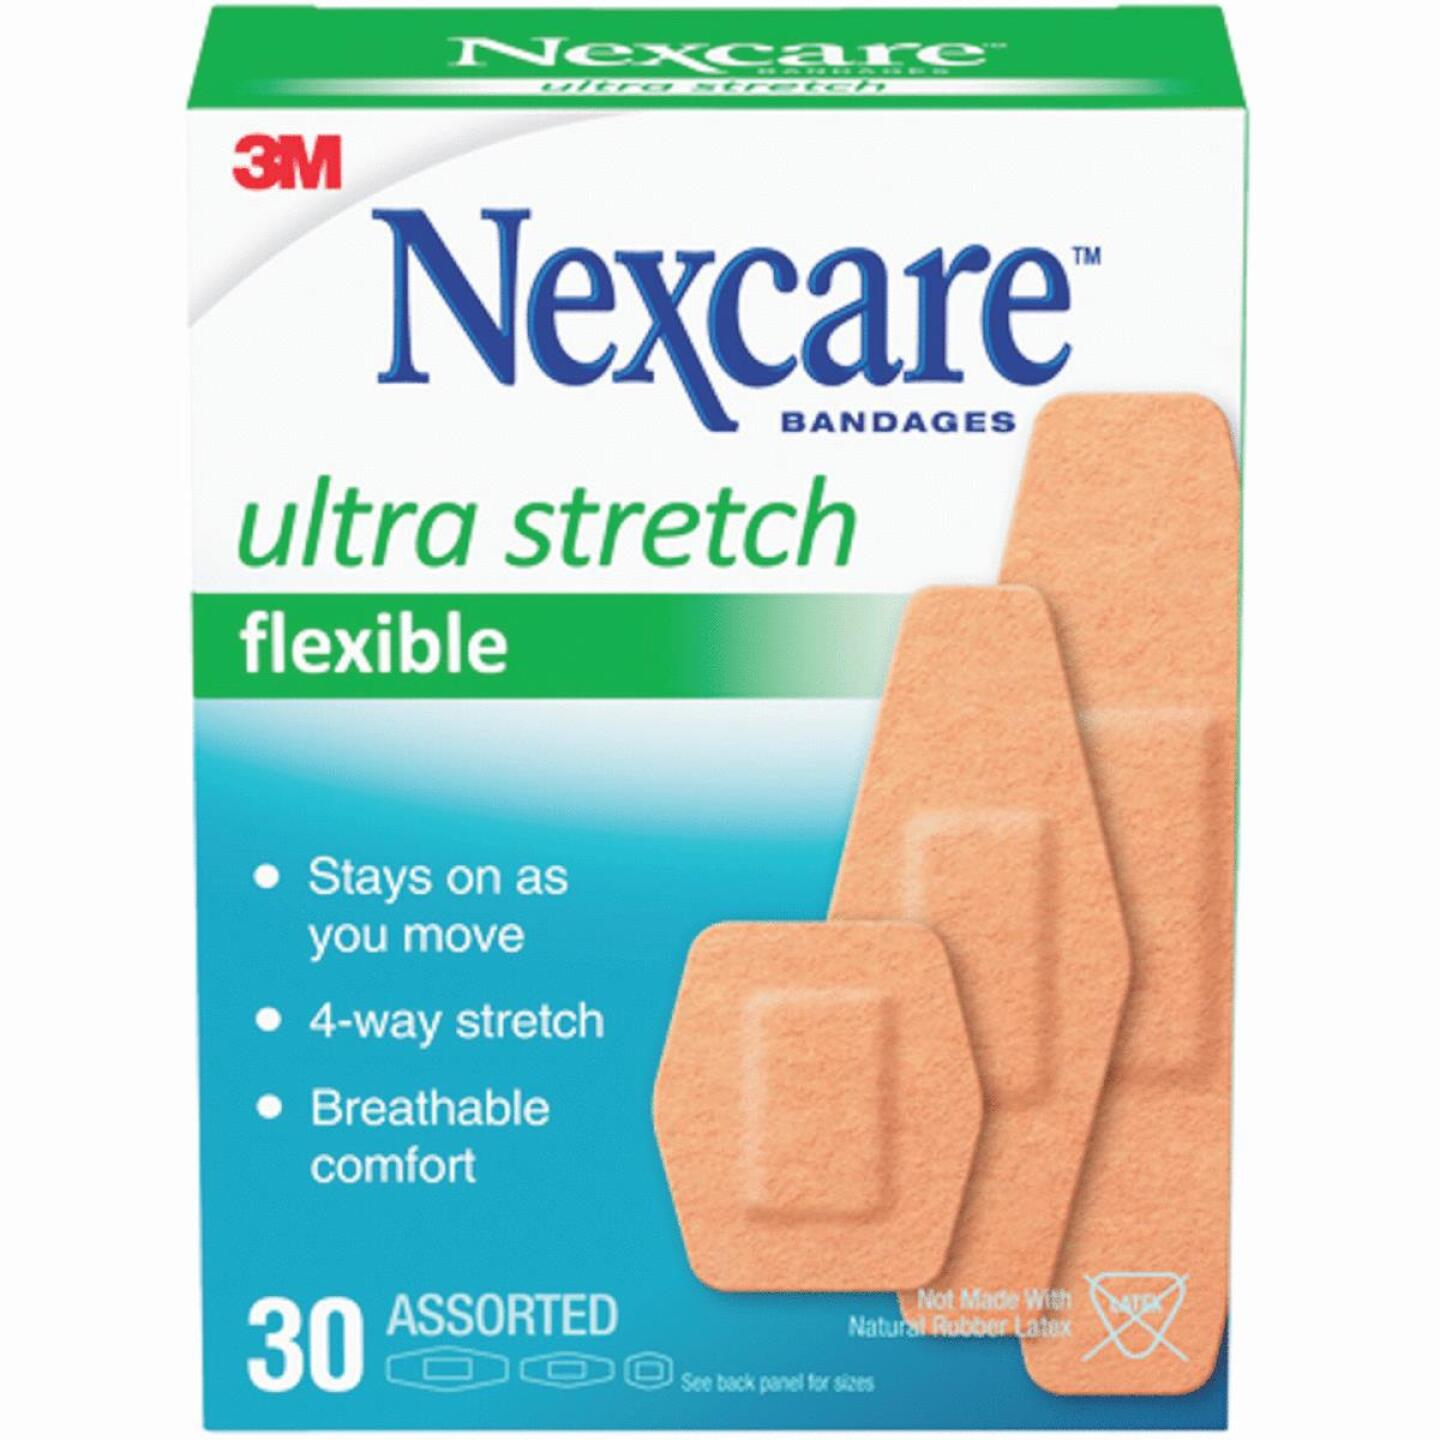 3M Nexcare Ultra Stretch Flex Assorted Bandages, (30 Ct.) Image 1